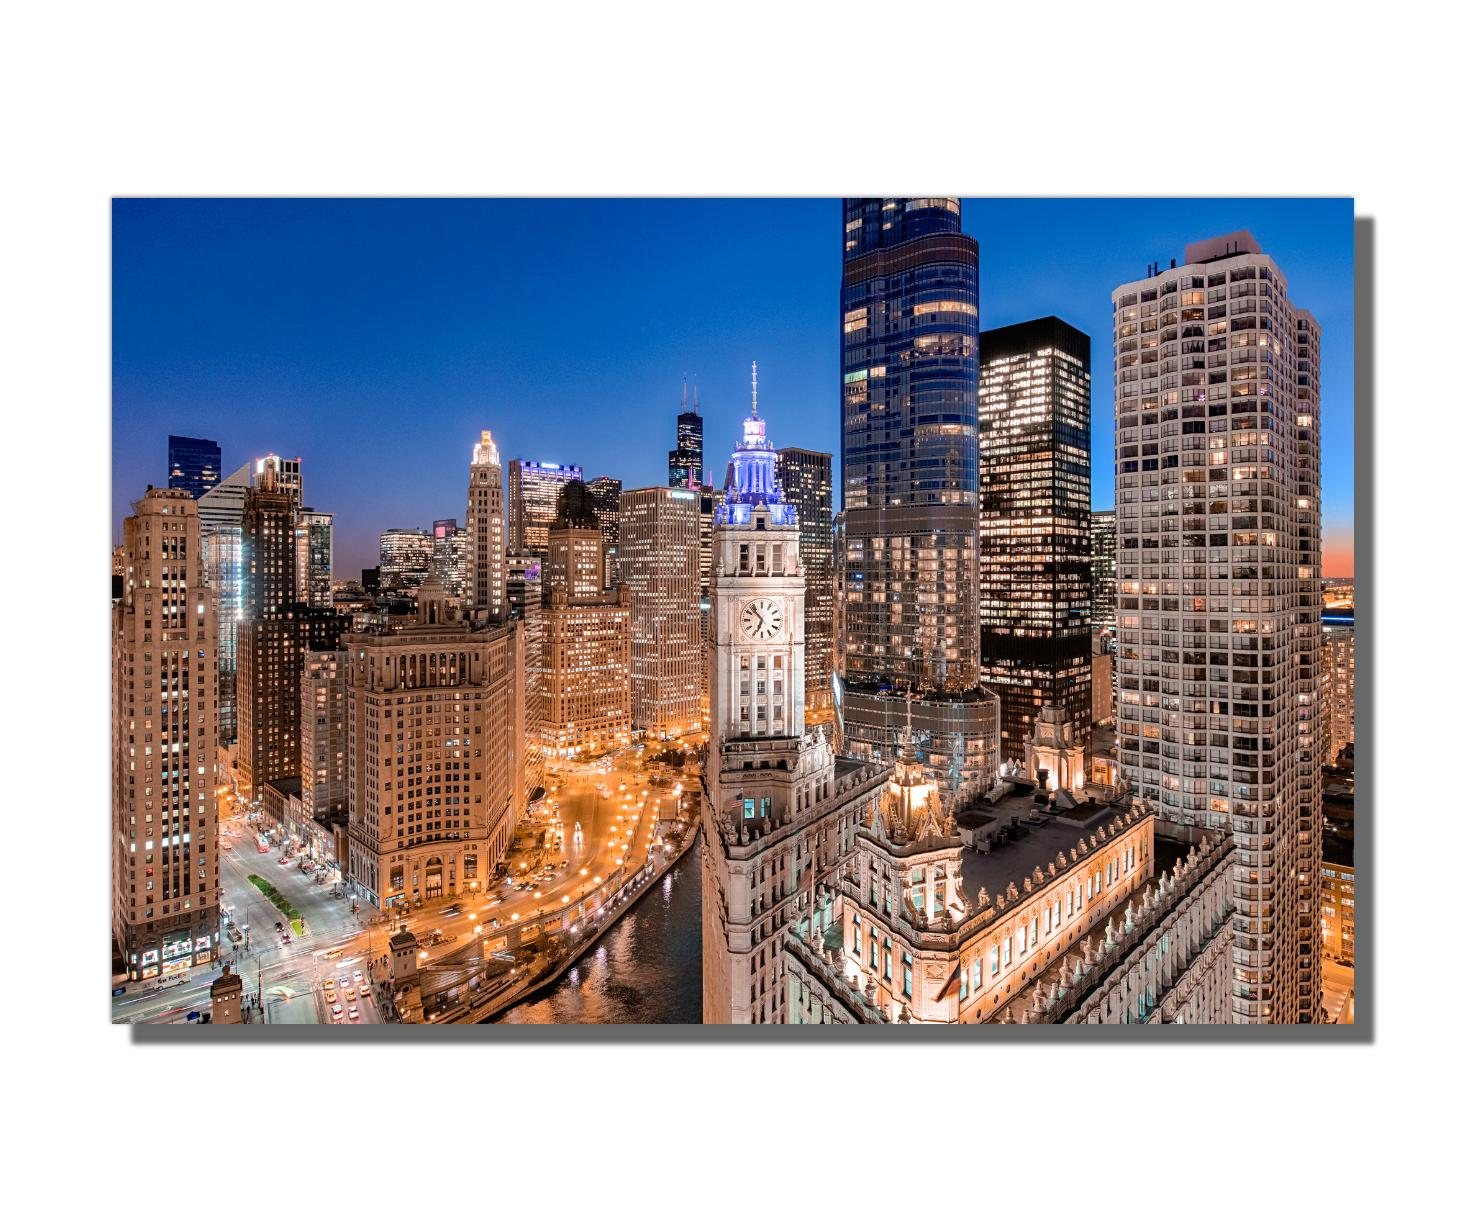 Aerial Photography, Chicago's Wacker Drive, Giclee on Metal, by Scott F.